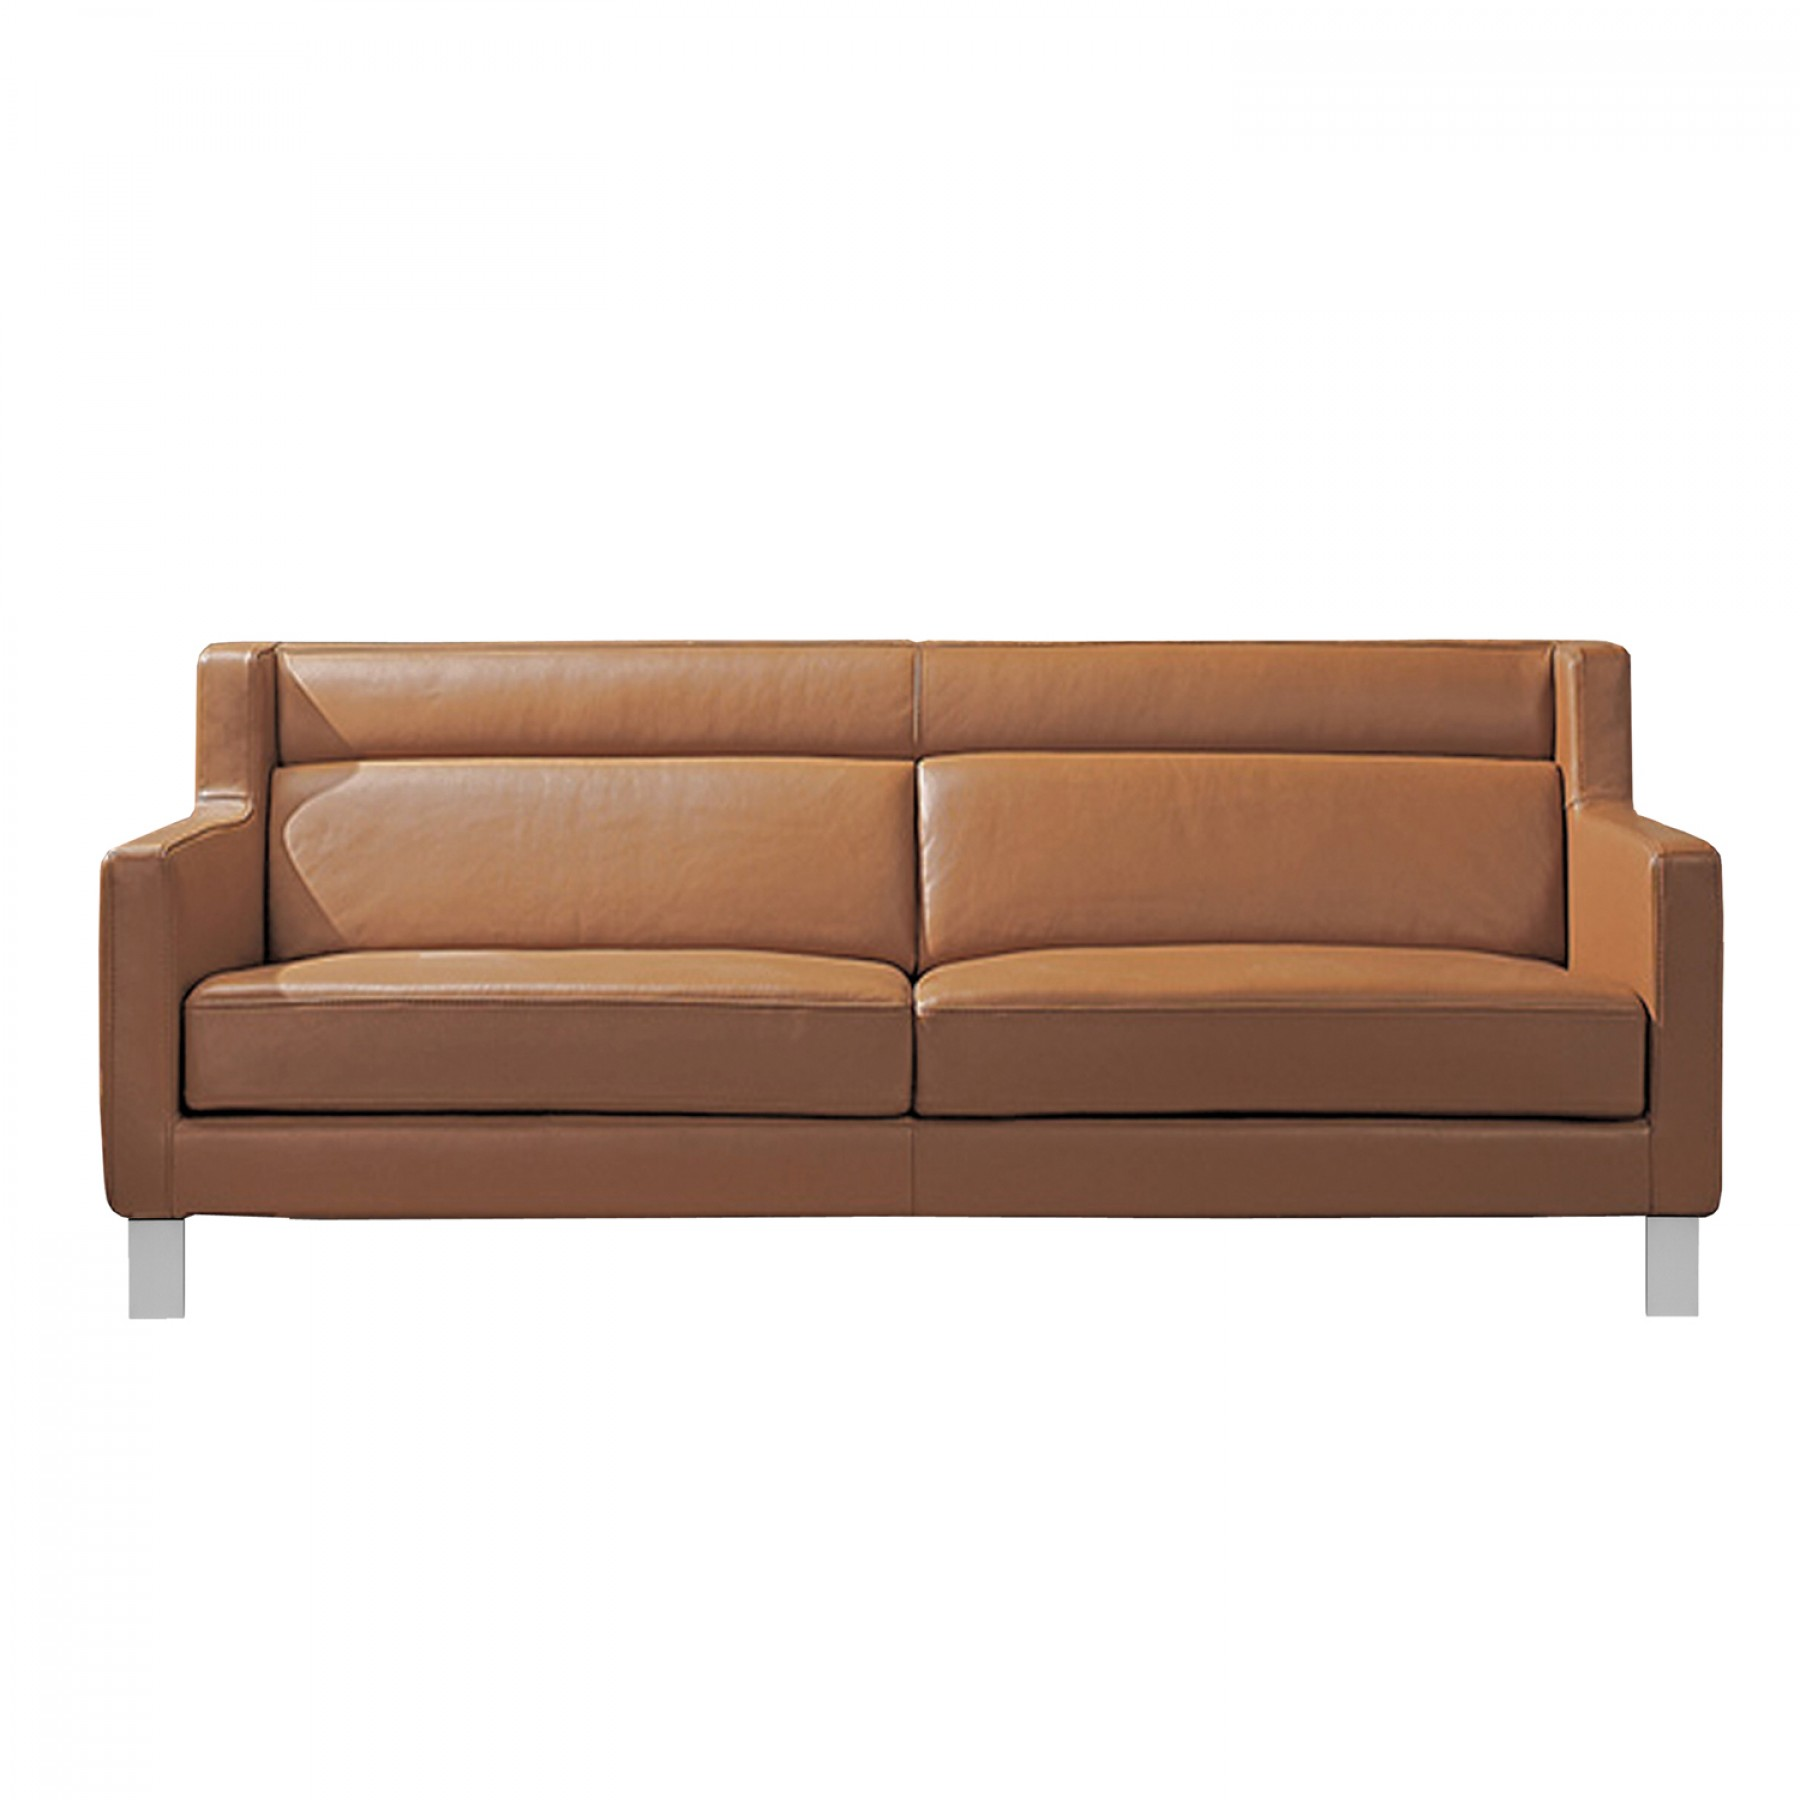 Spazio 3 seater sofa beyond furniture for 3 seater sofa